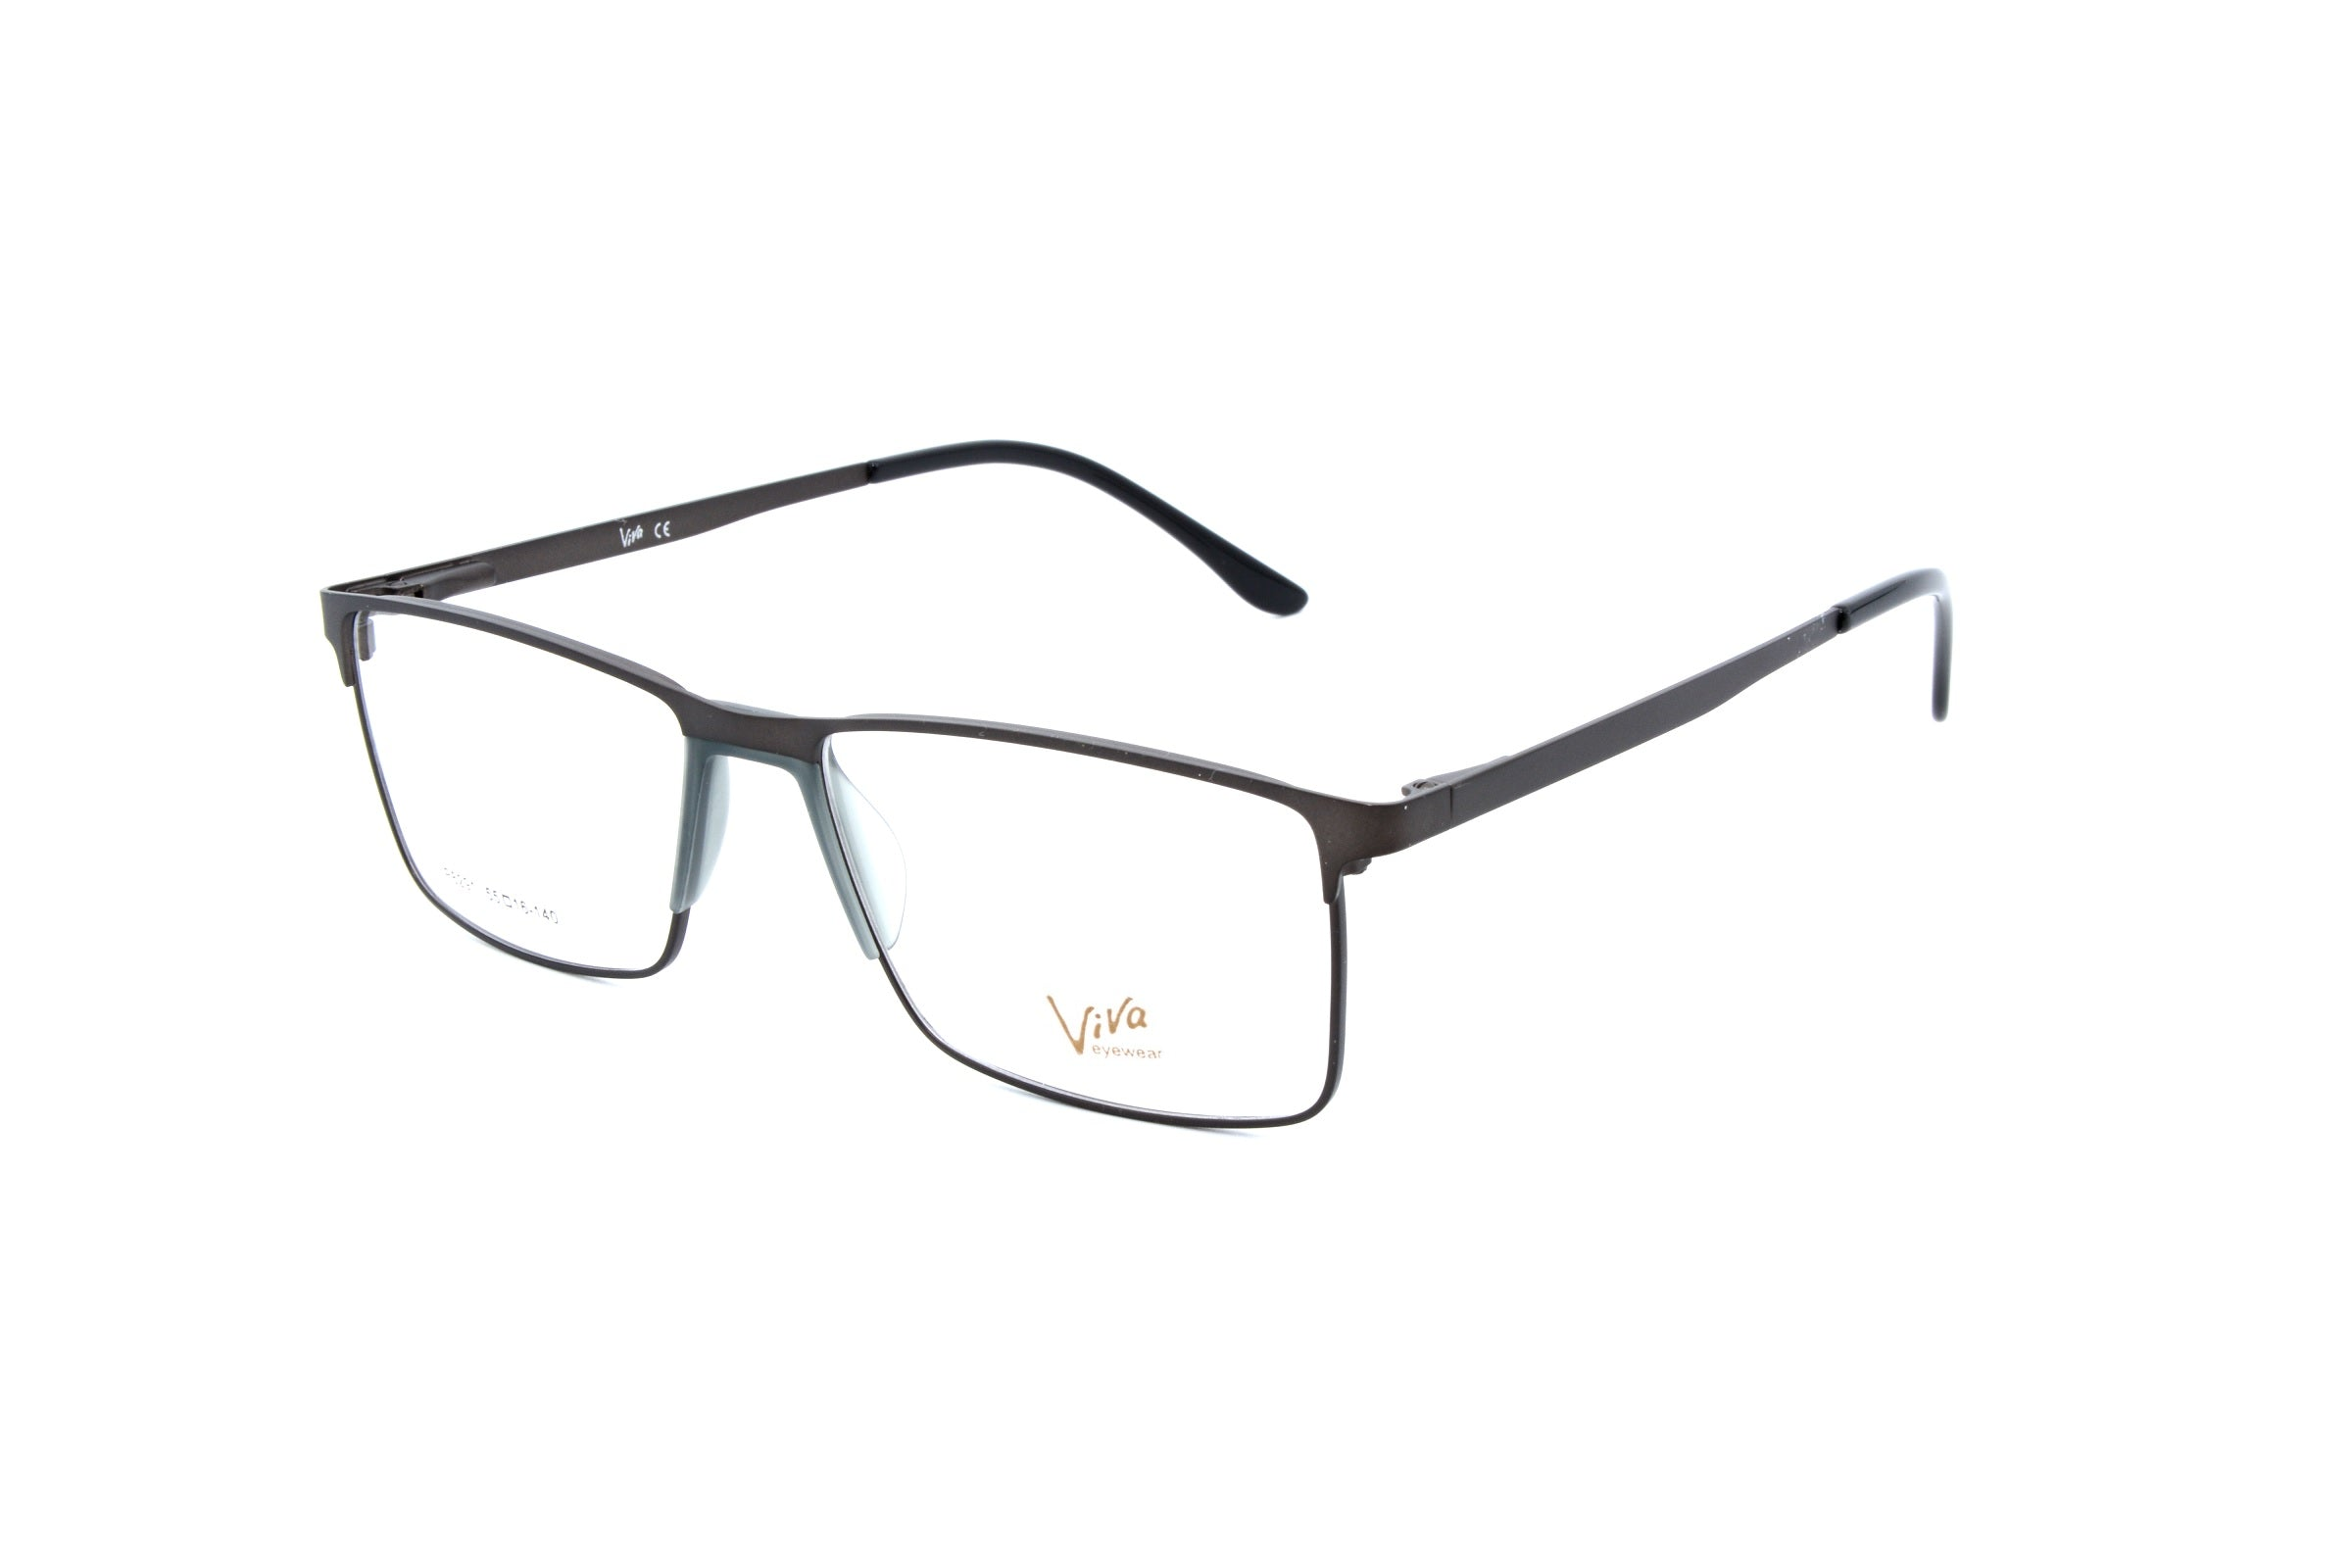 Viva eyewear 8291, M2 - Optics Trading